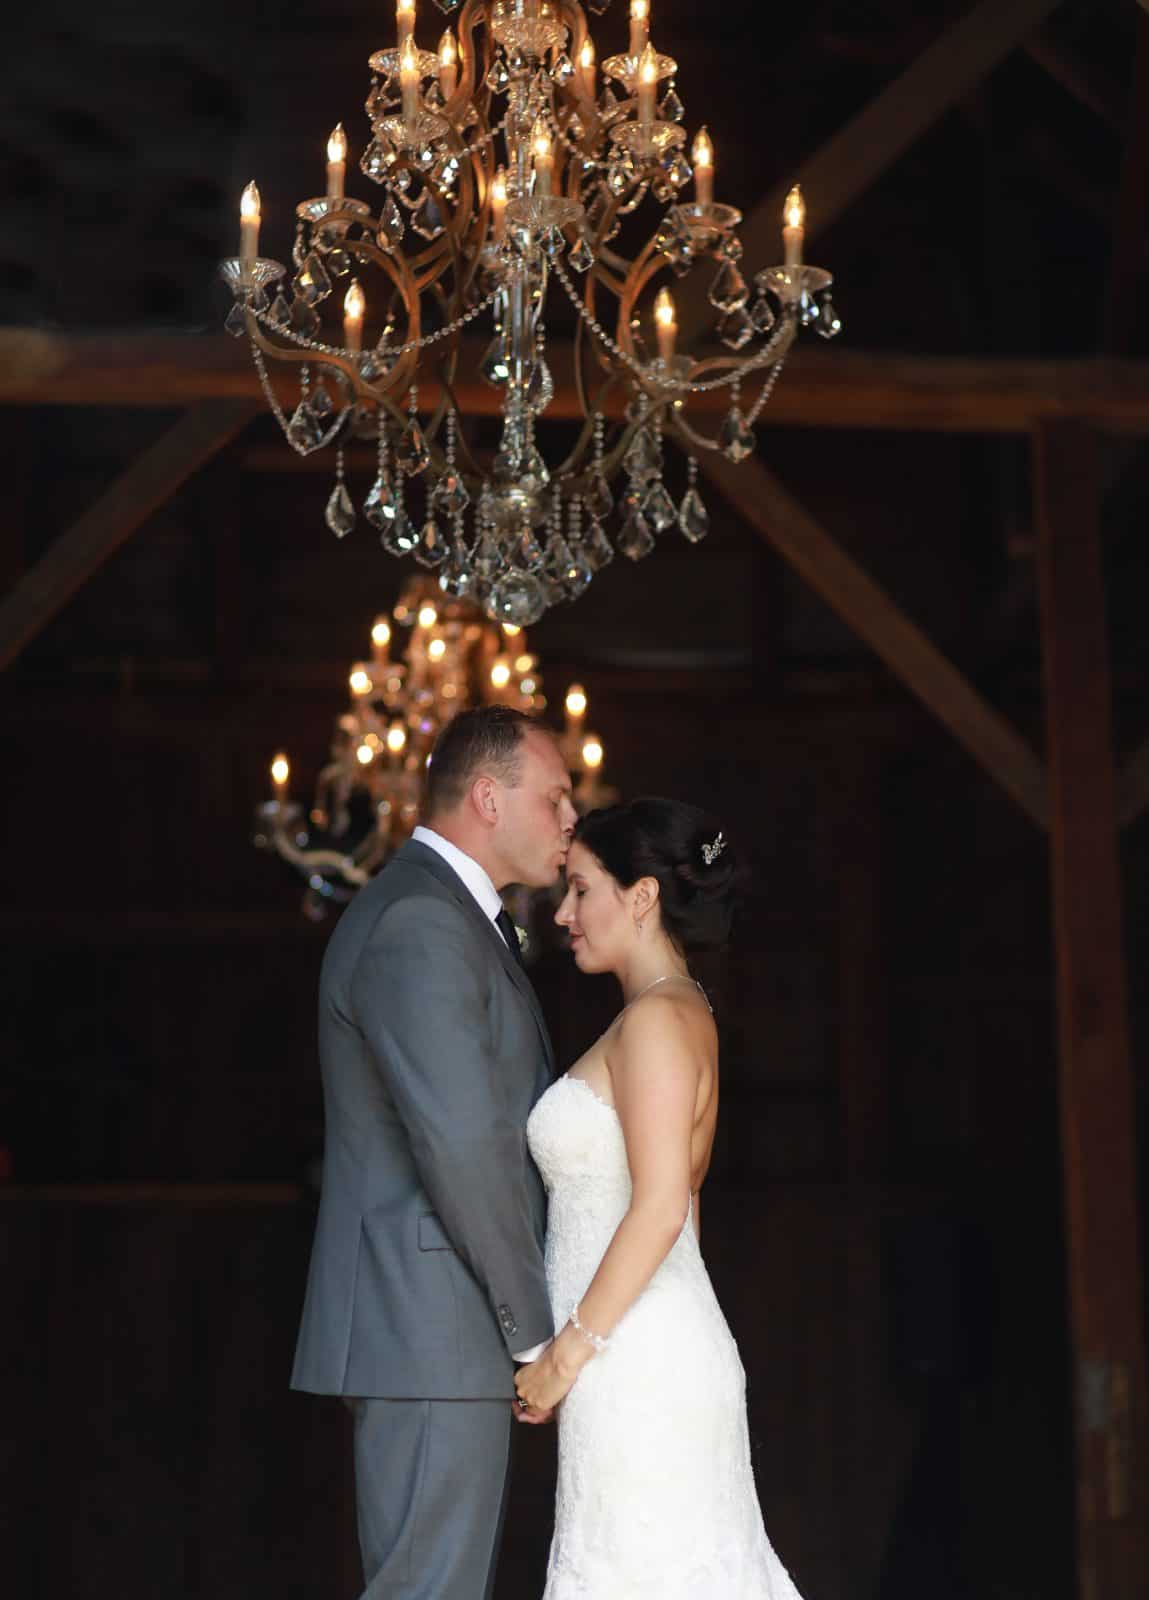 Bride and Groom in a barn with a chandelier embracing one another